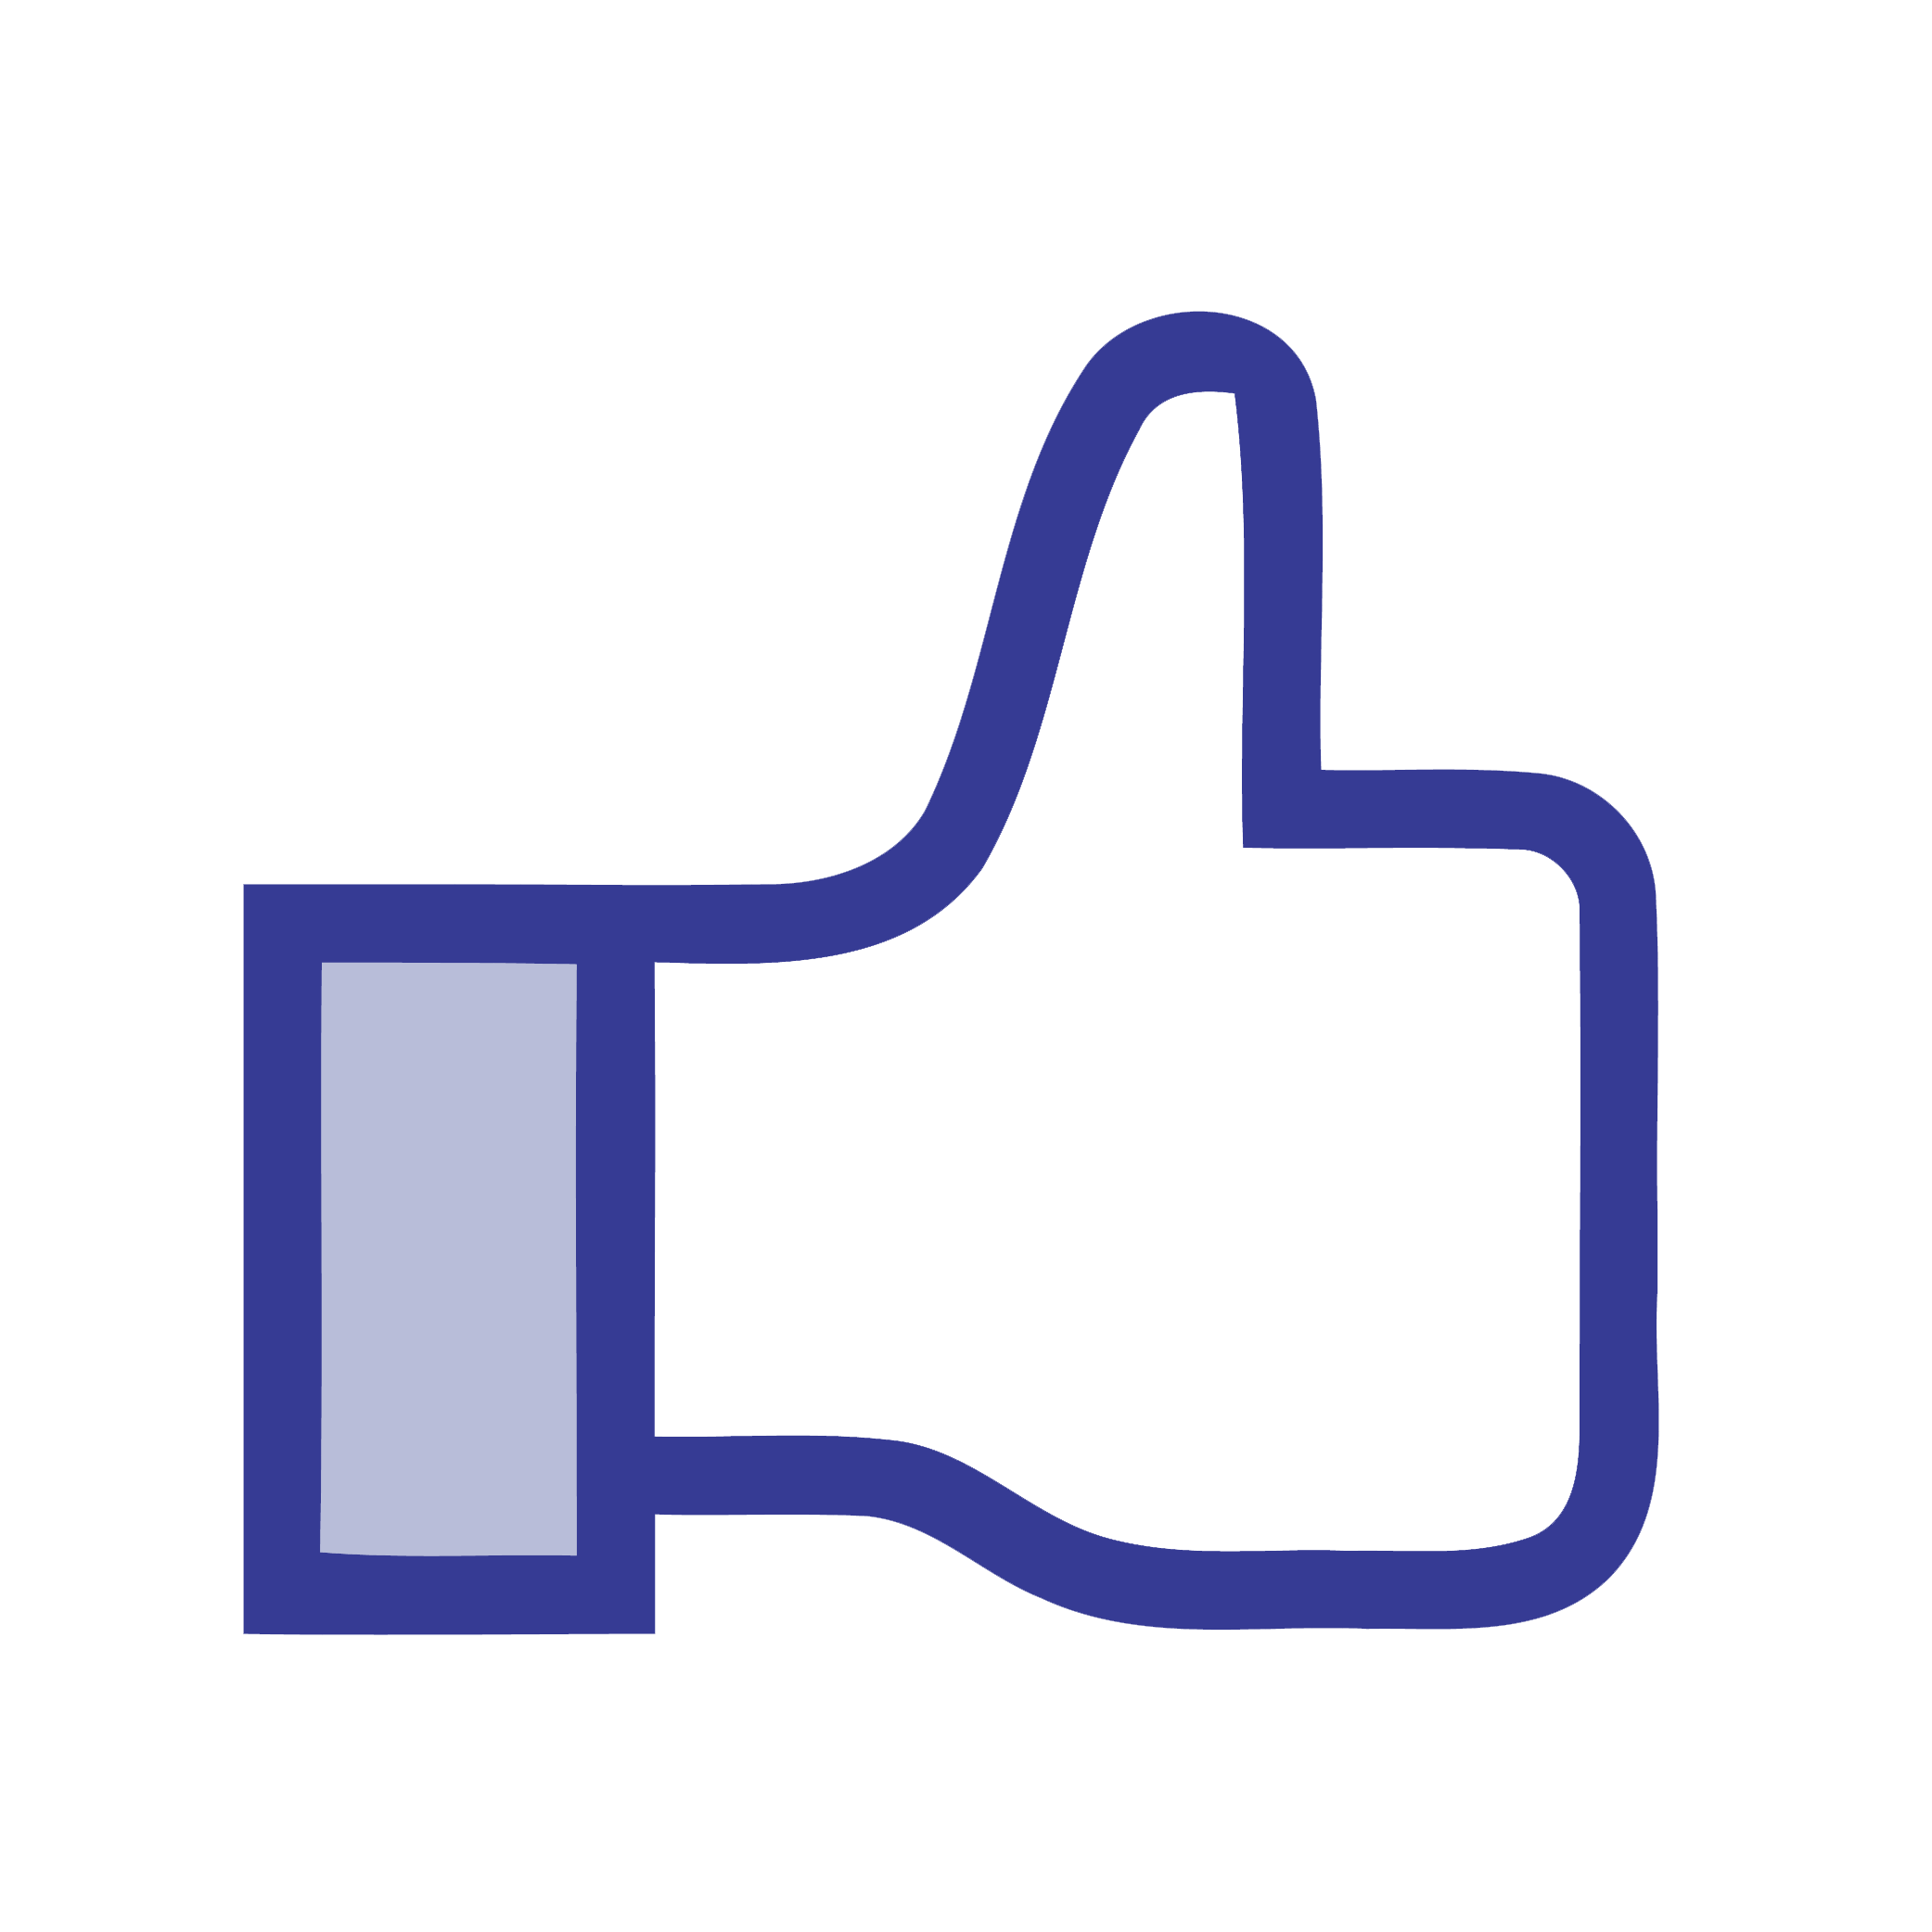 Facebook like png. Transparent images pluspng photo